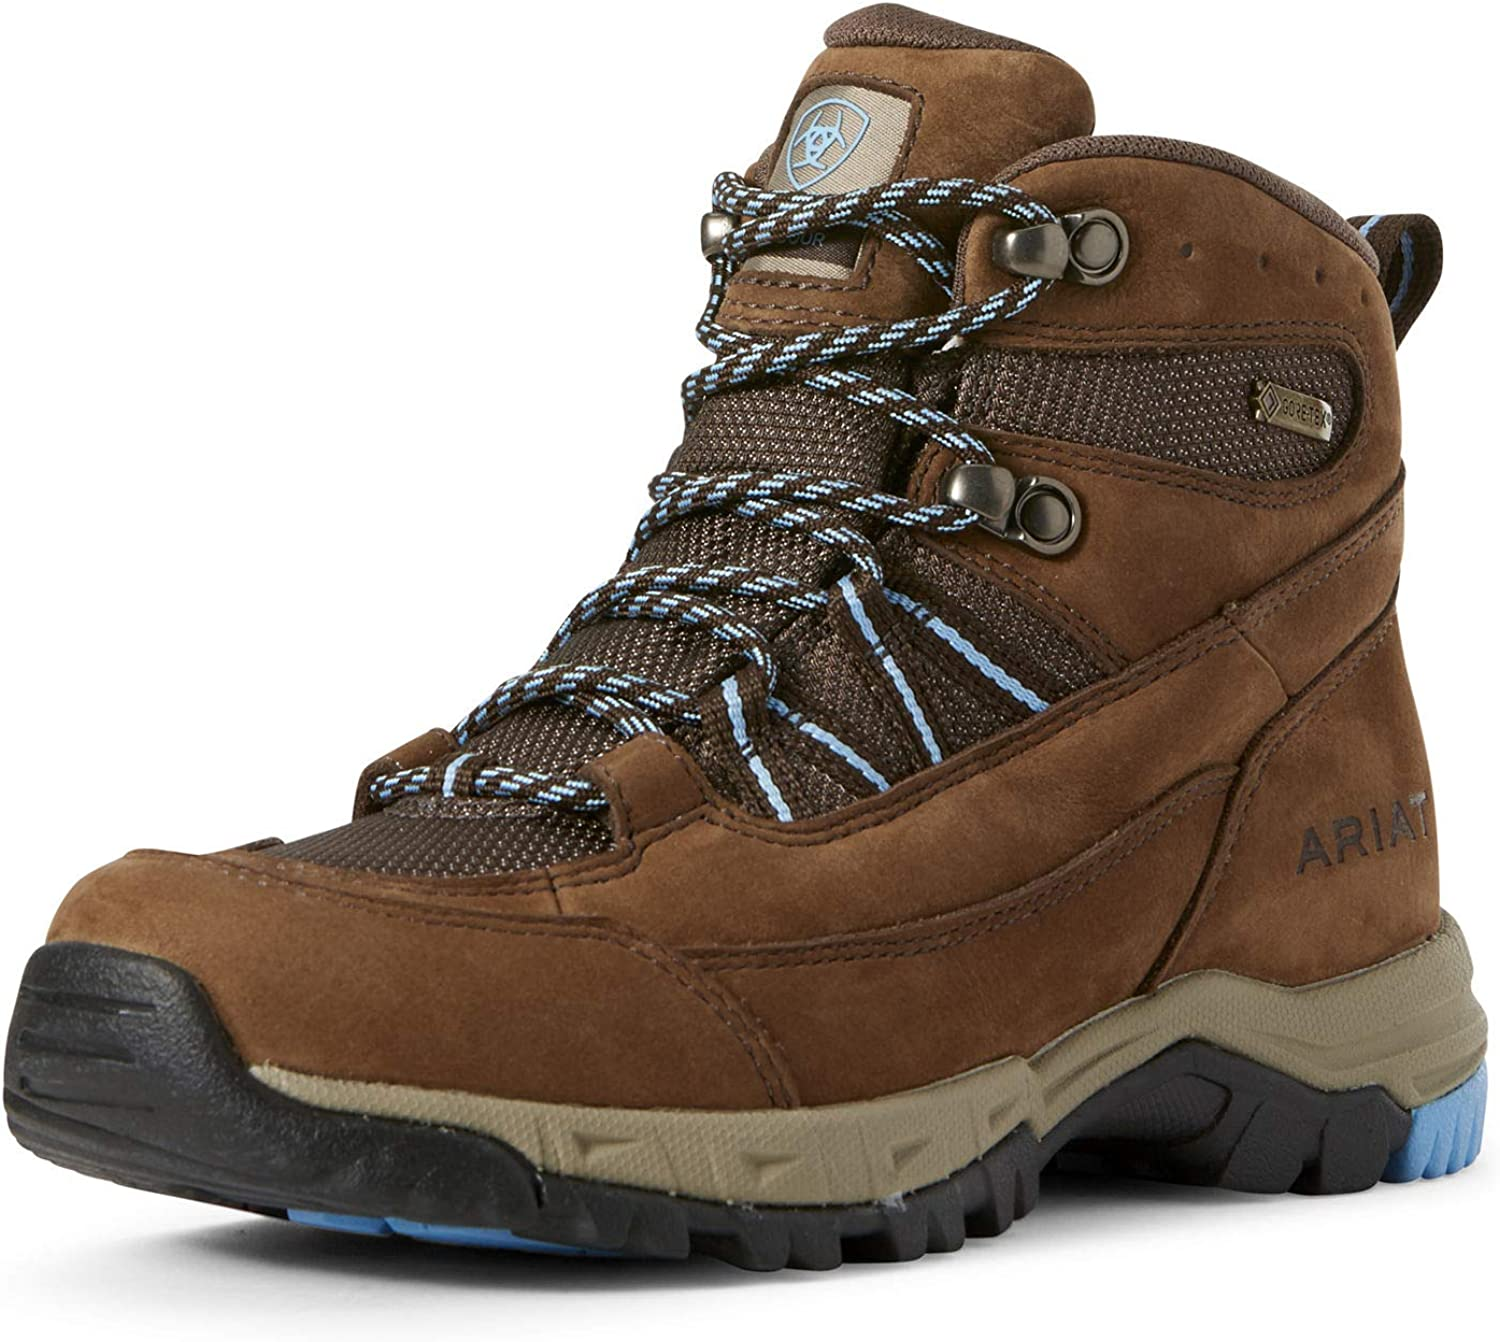 ARIAT Damen Reitstiefelette Skyline Summit GTX